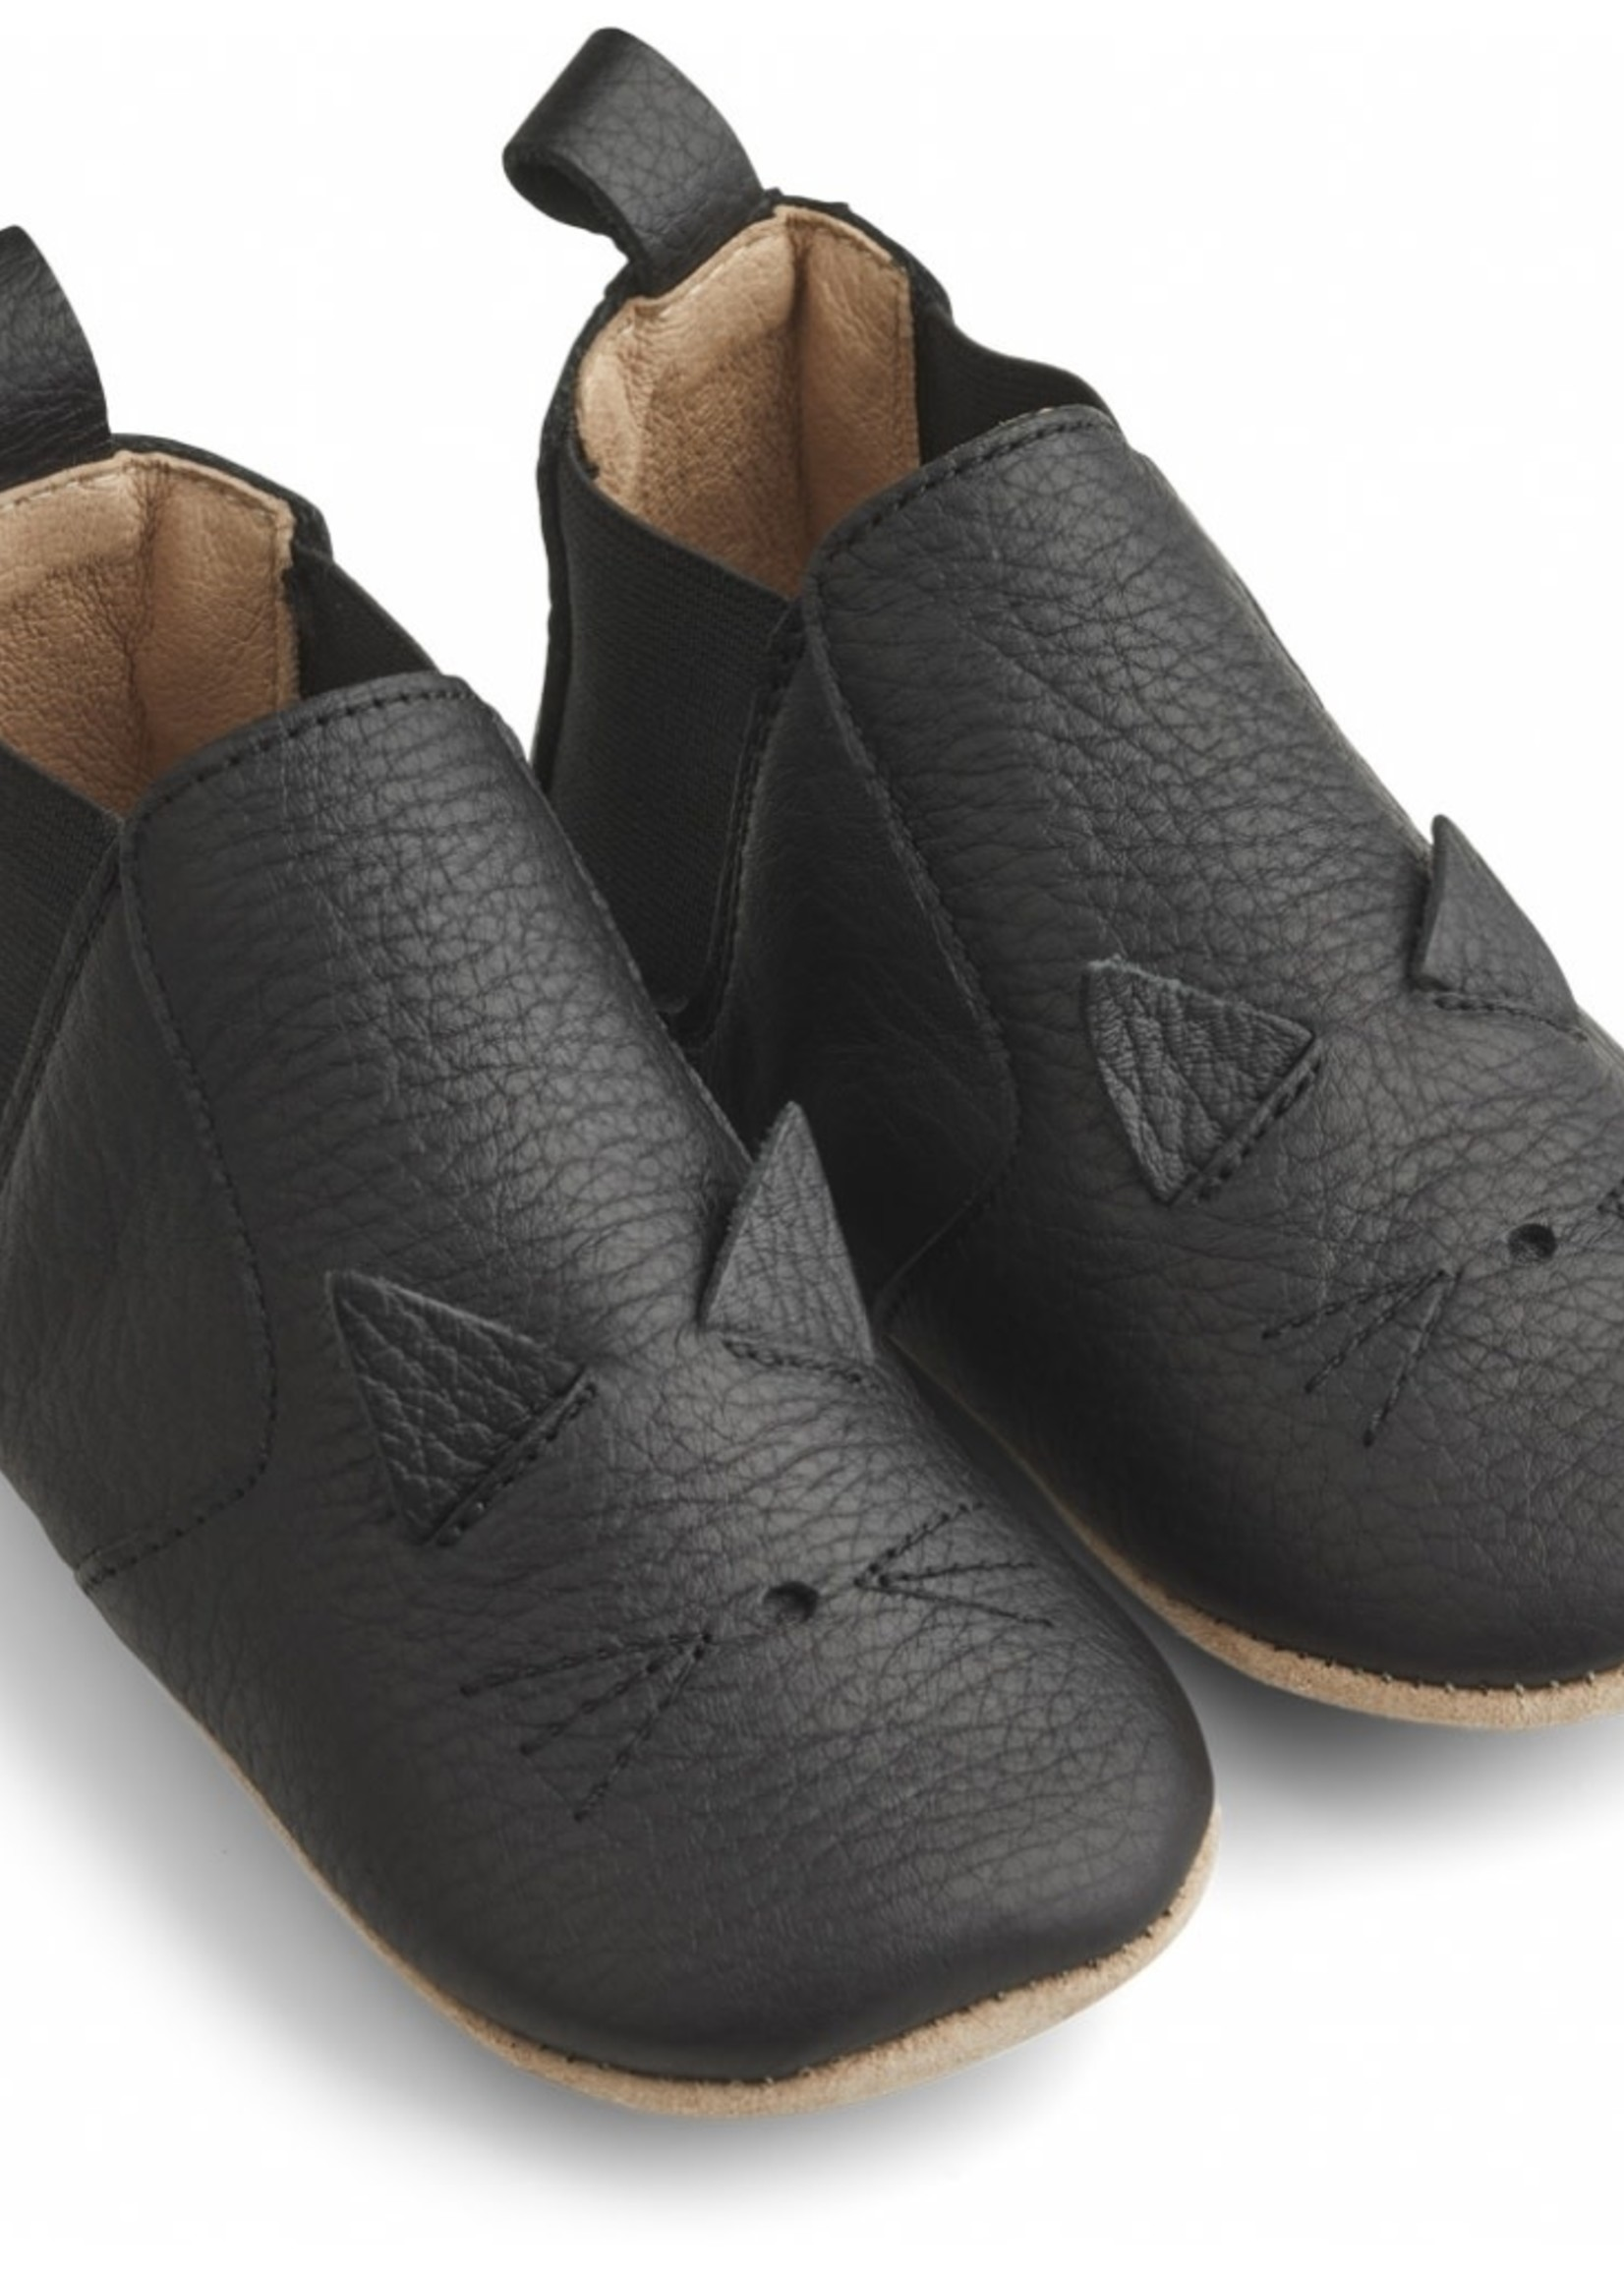 liewood Liewood-AW21 LW13037 Edith leather slippers 100% leather